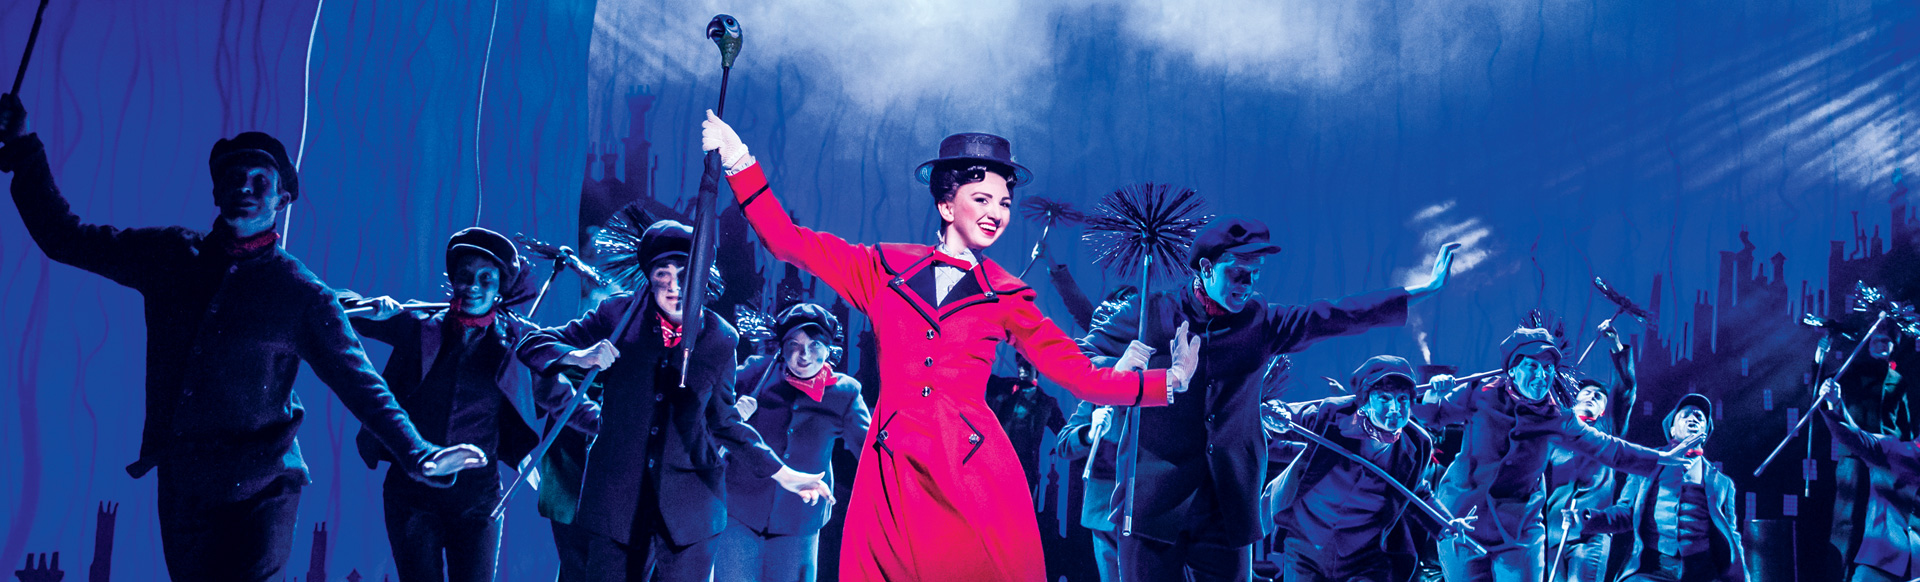 Zizi Strallen as Mary Poppins dancing on stage